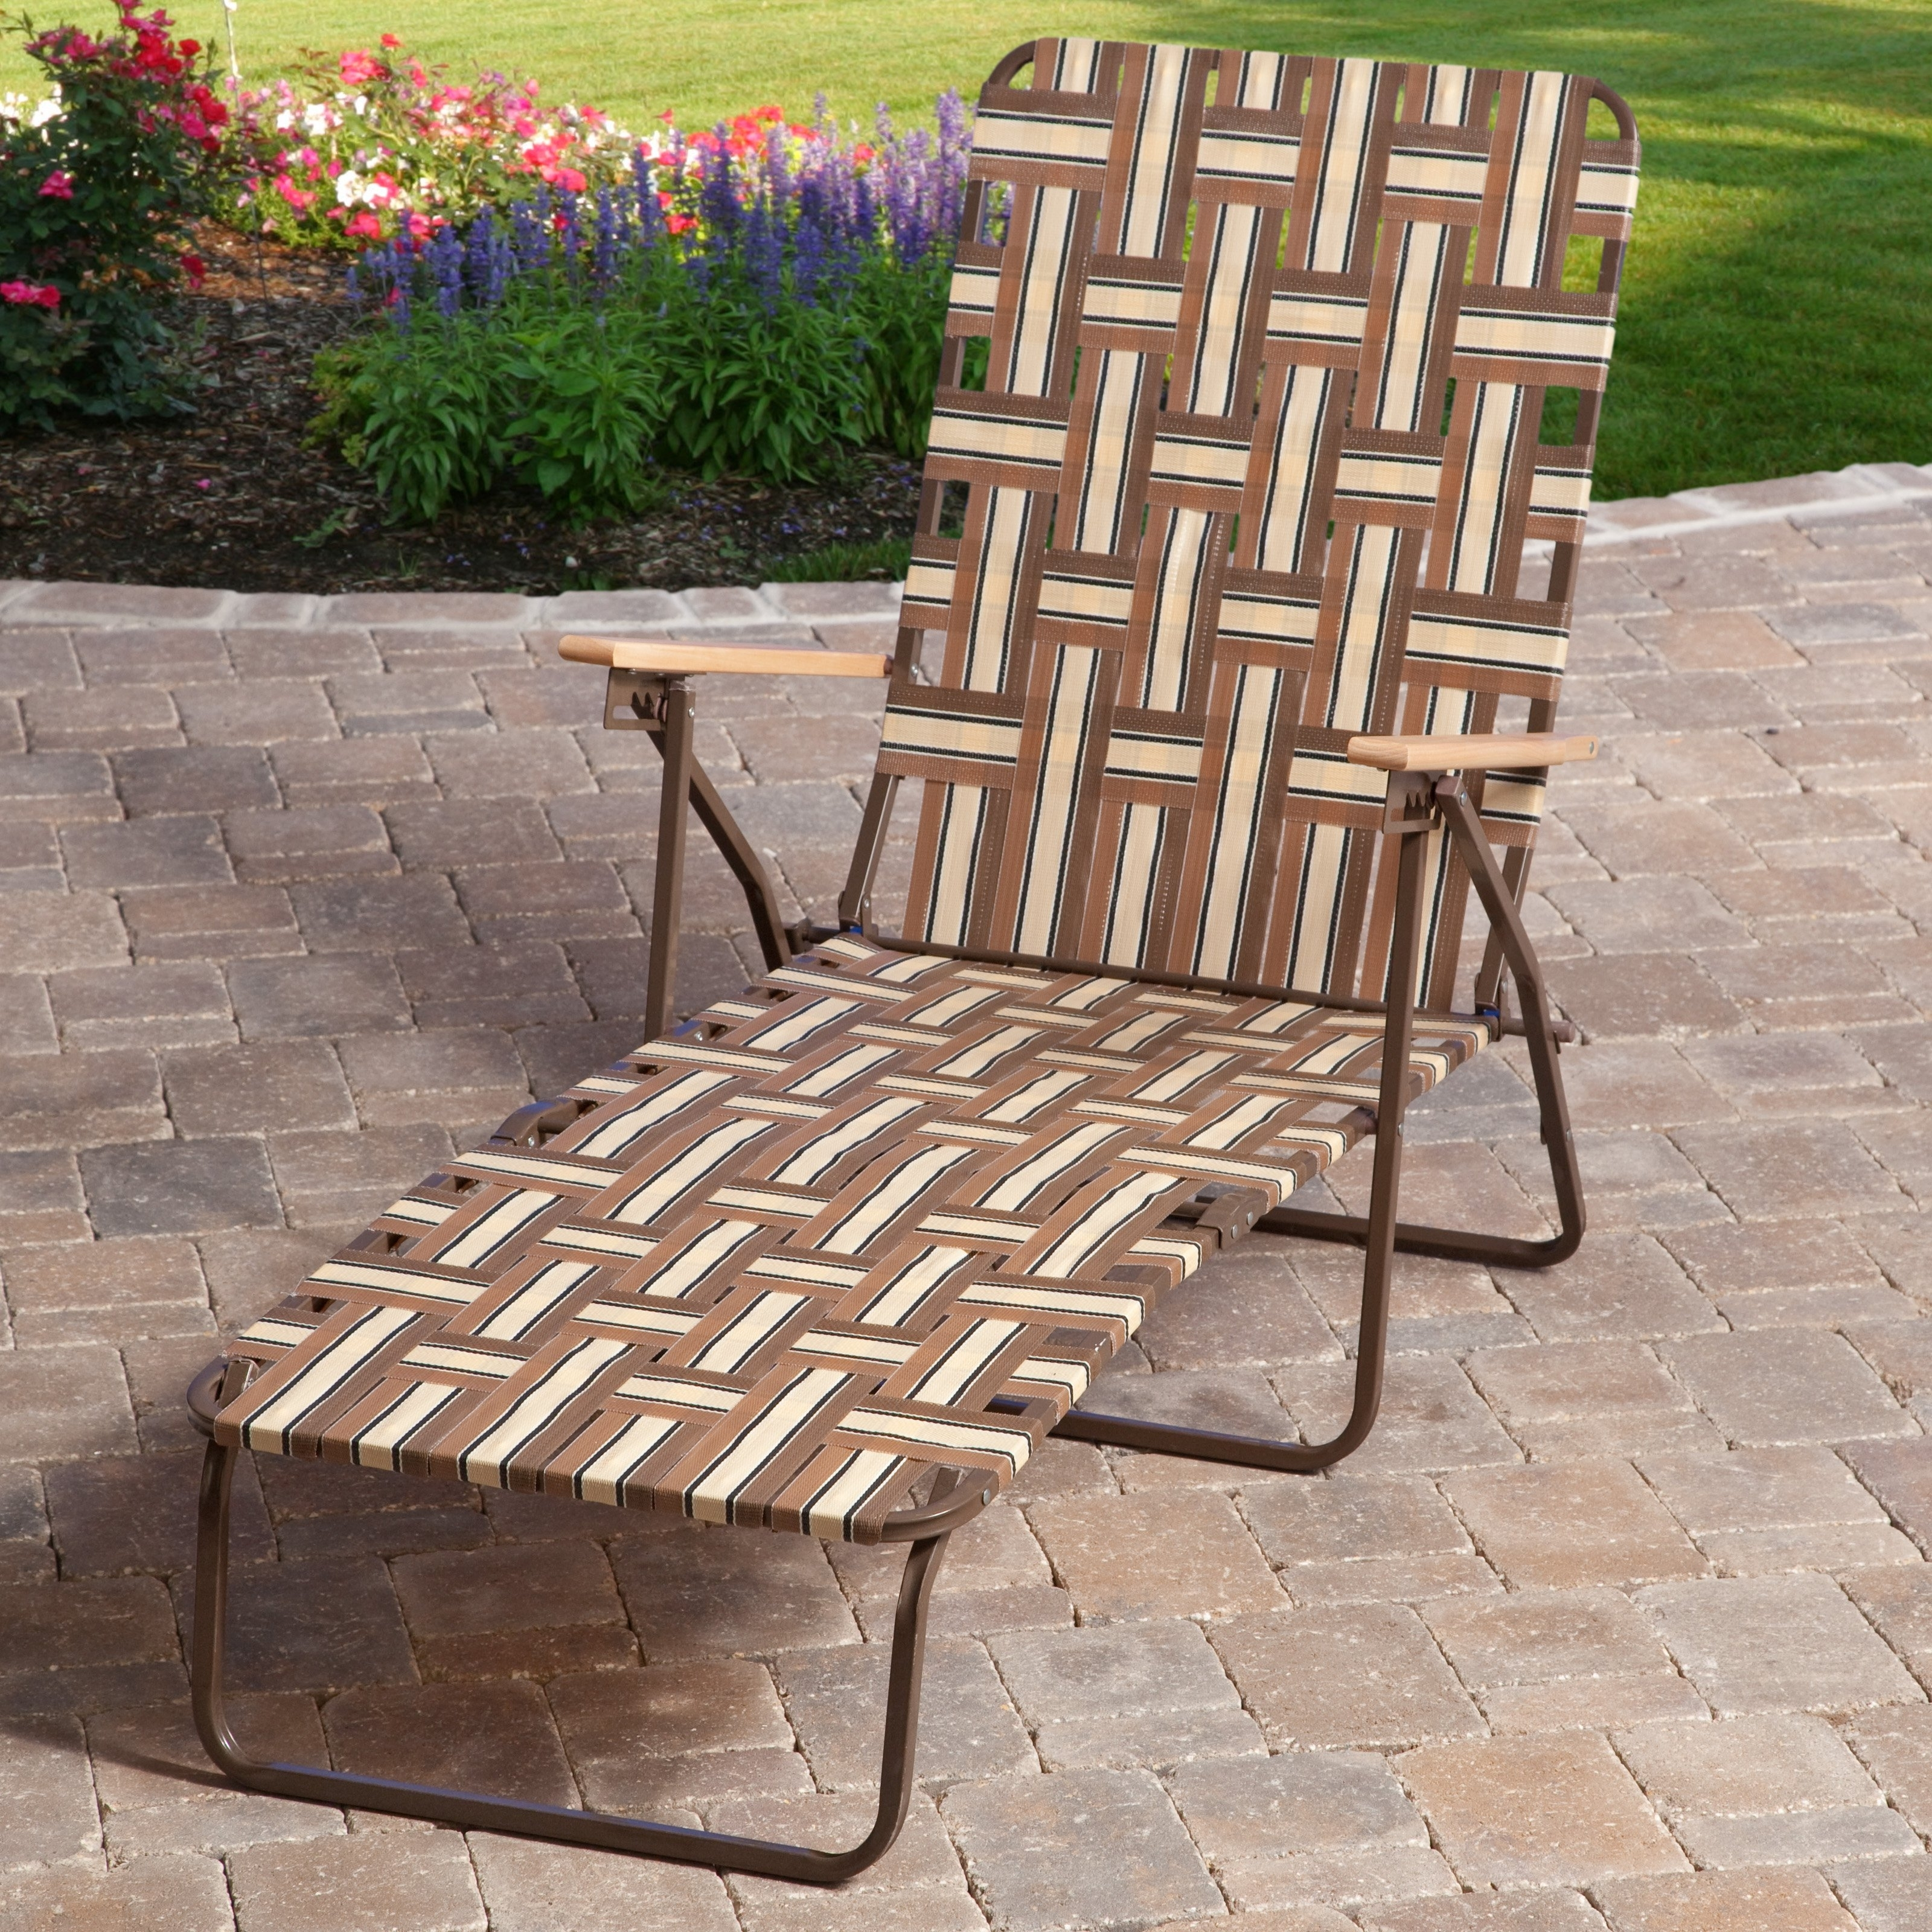 Best And Newest Rio Deluxe Folding Web Chaise Lounge – Walmart With Cheap Folding Chaise Lounge Chairs For Outdoor (View 2 of 15)